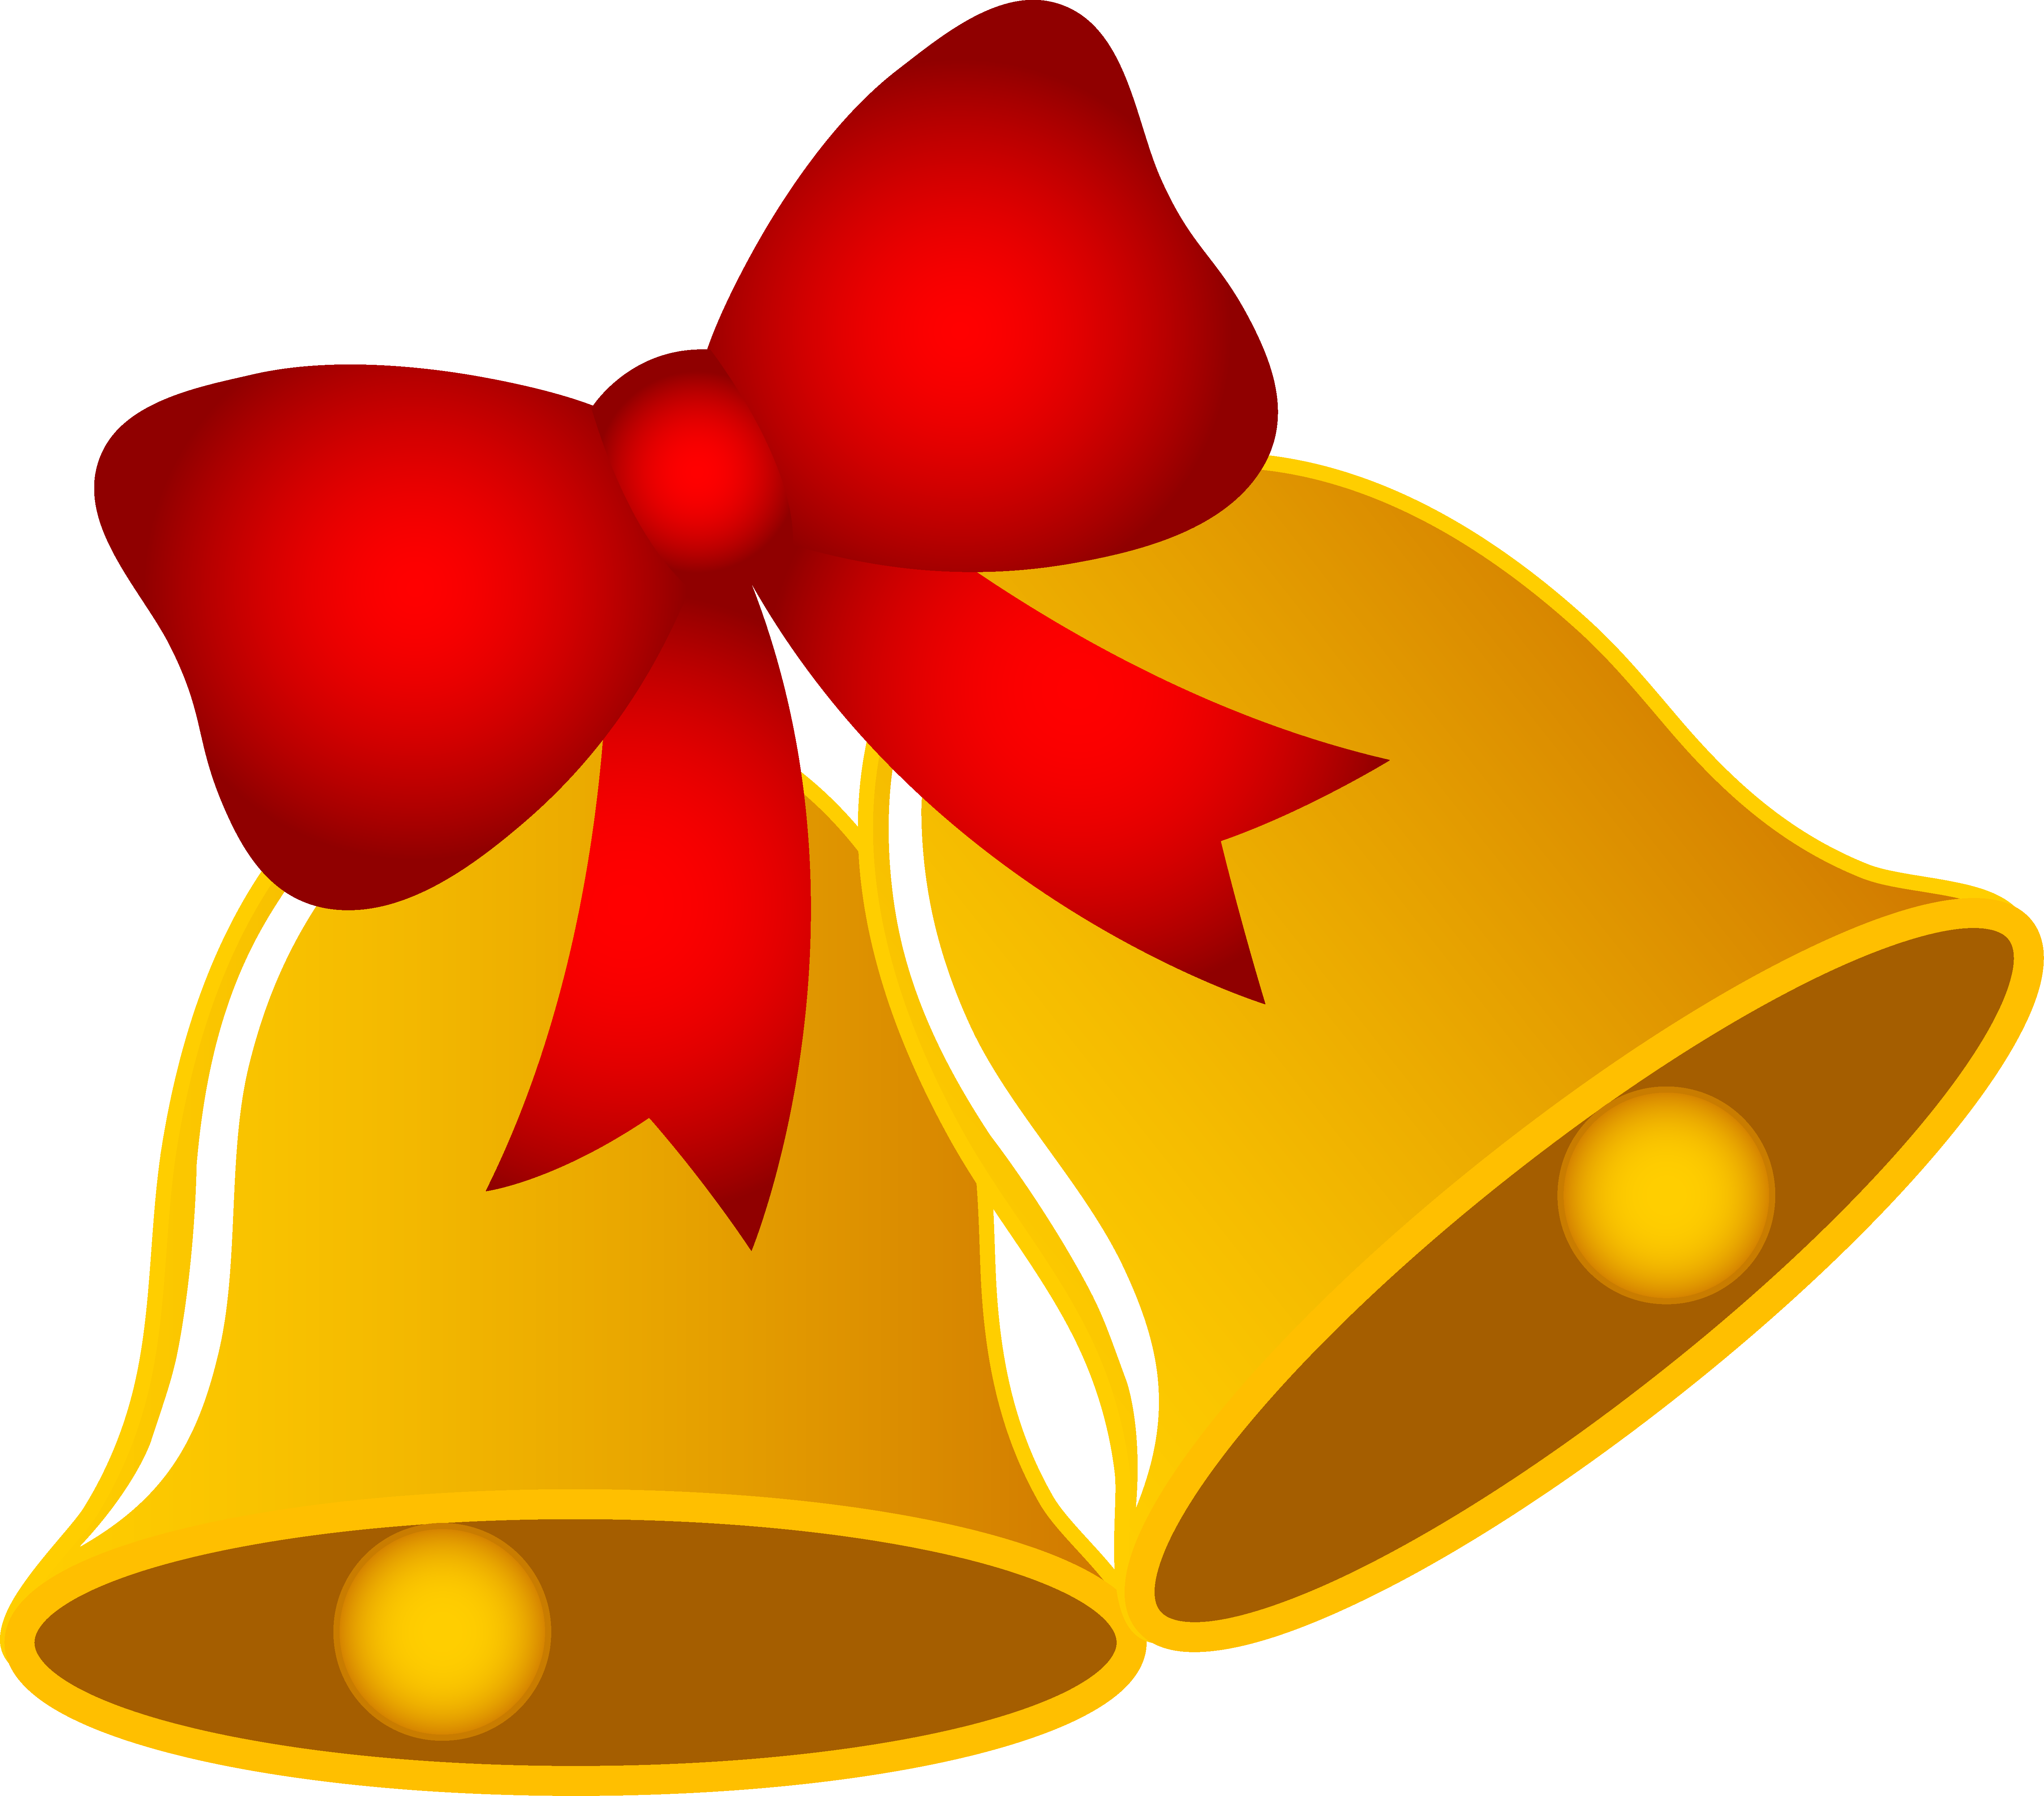 clip art royalty free download Bow clipart four. Excellent design ideas christmas